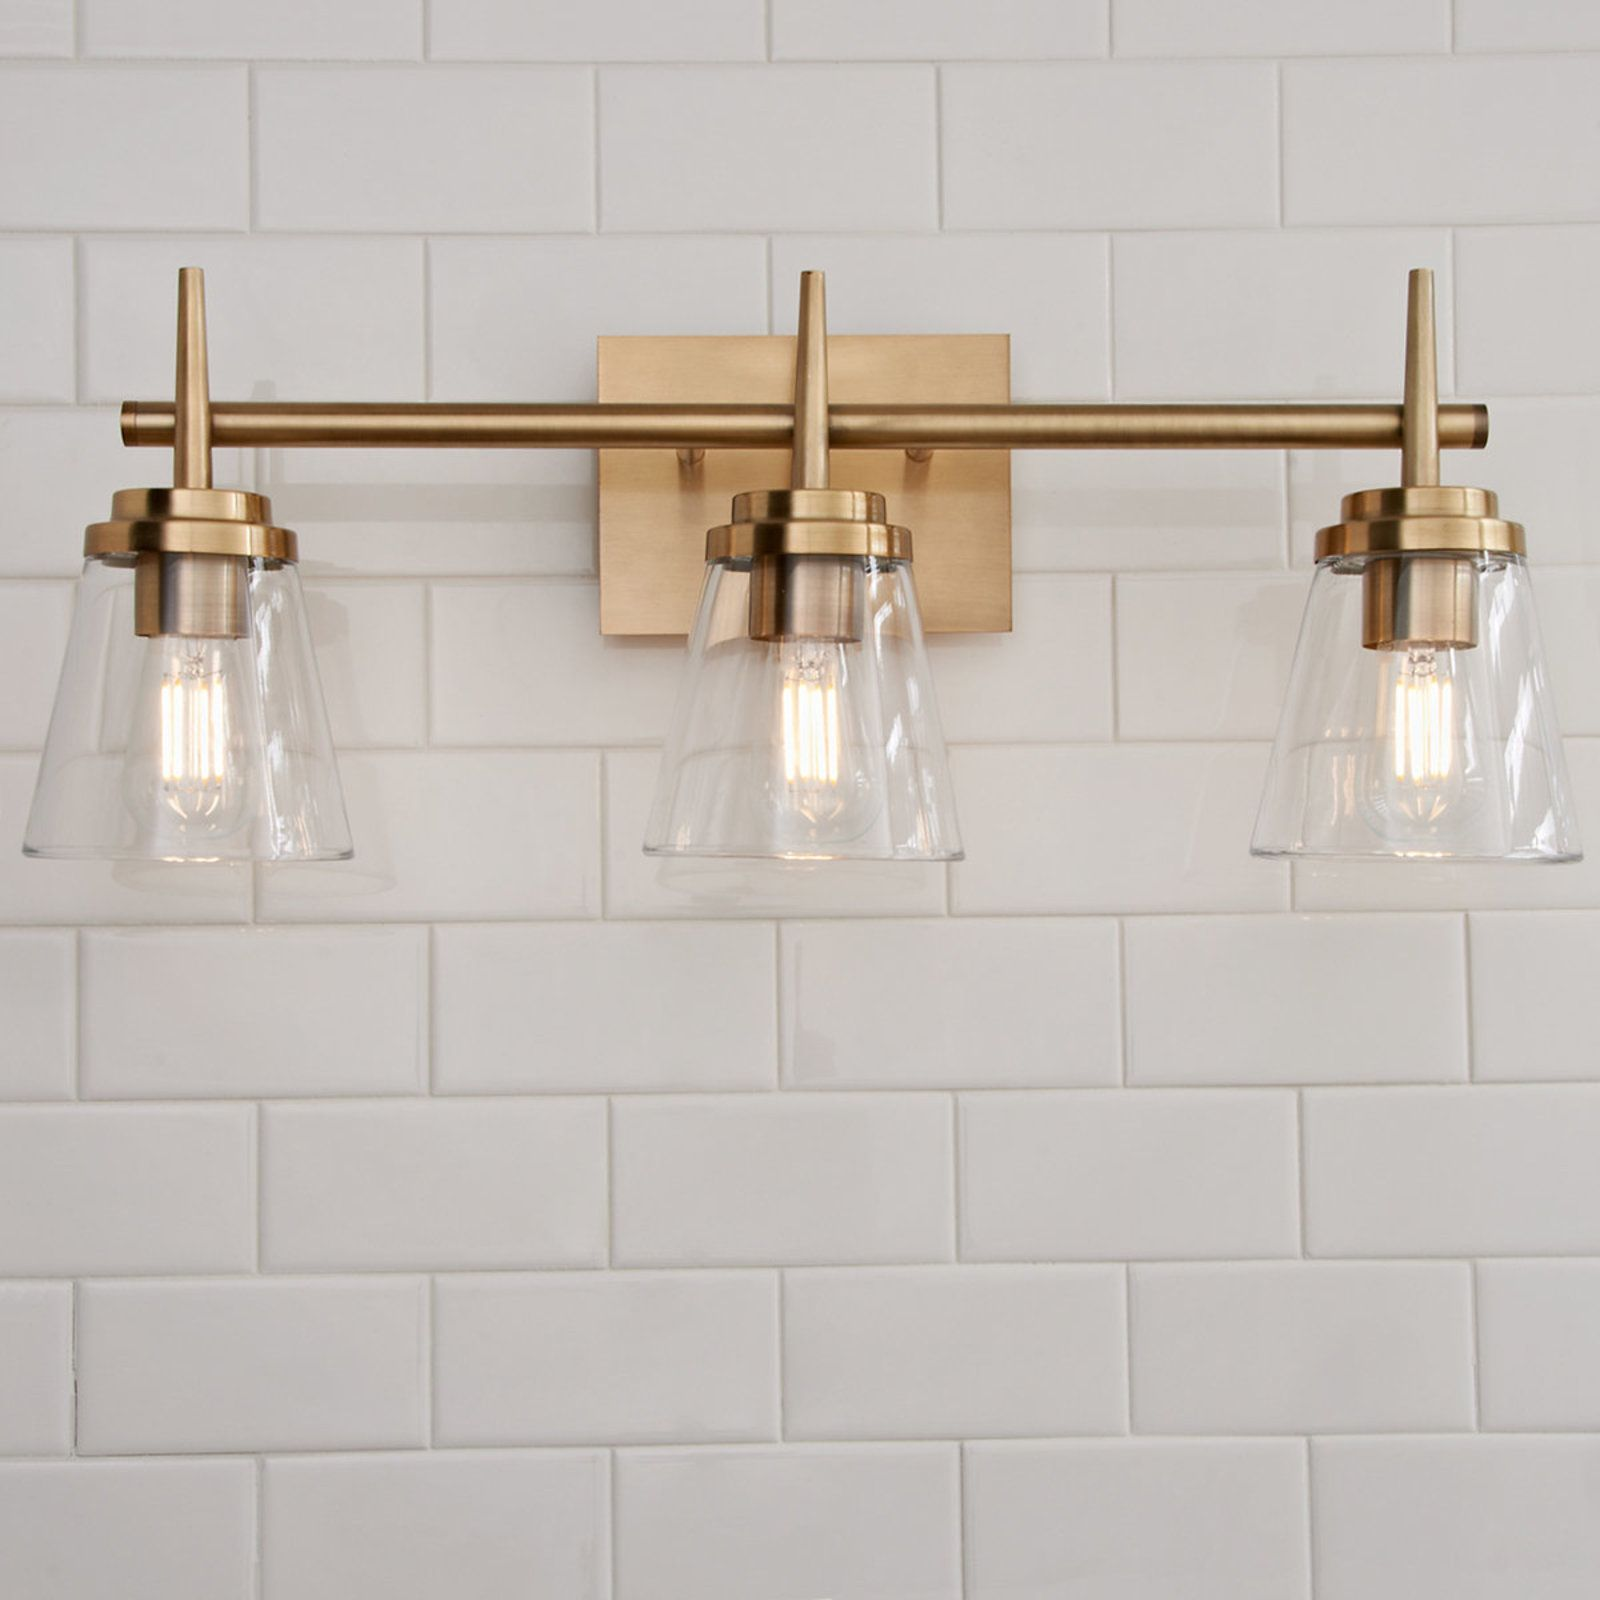 Tapered Spike Vanity Light 3 Light Bathroom Light Fixtures